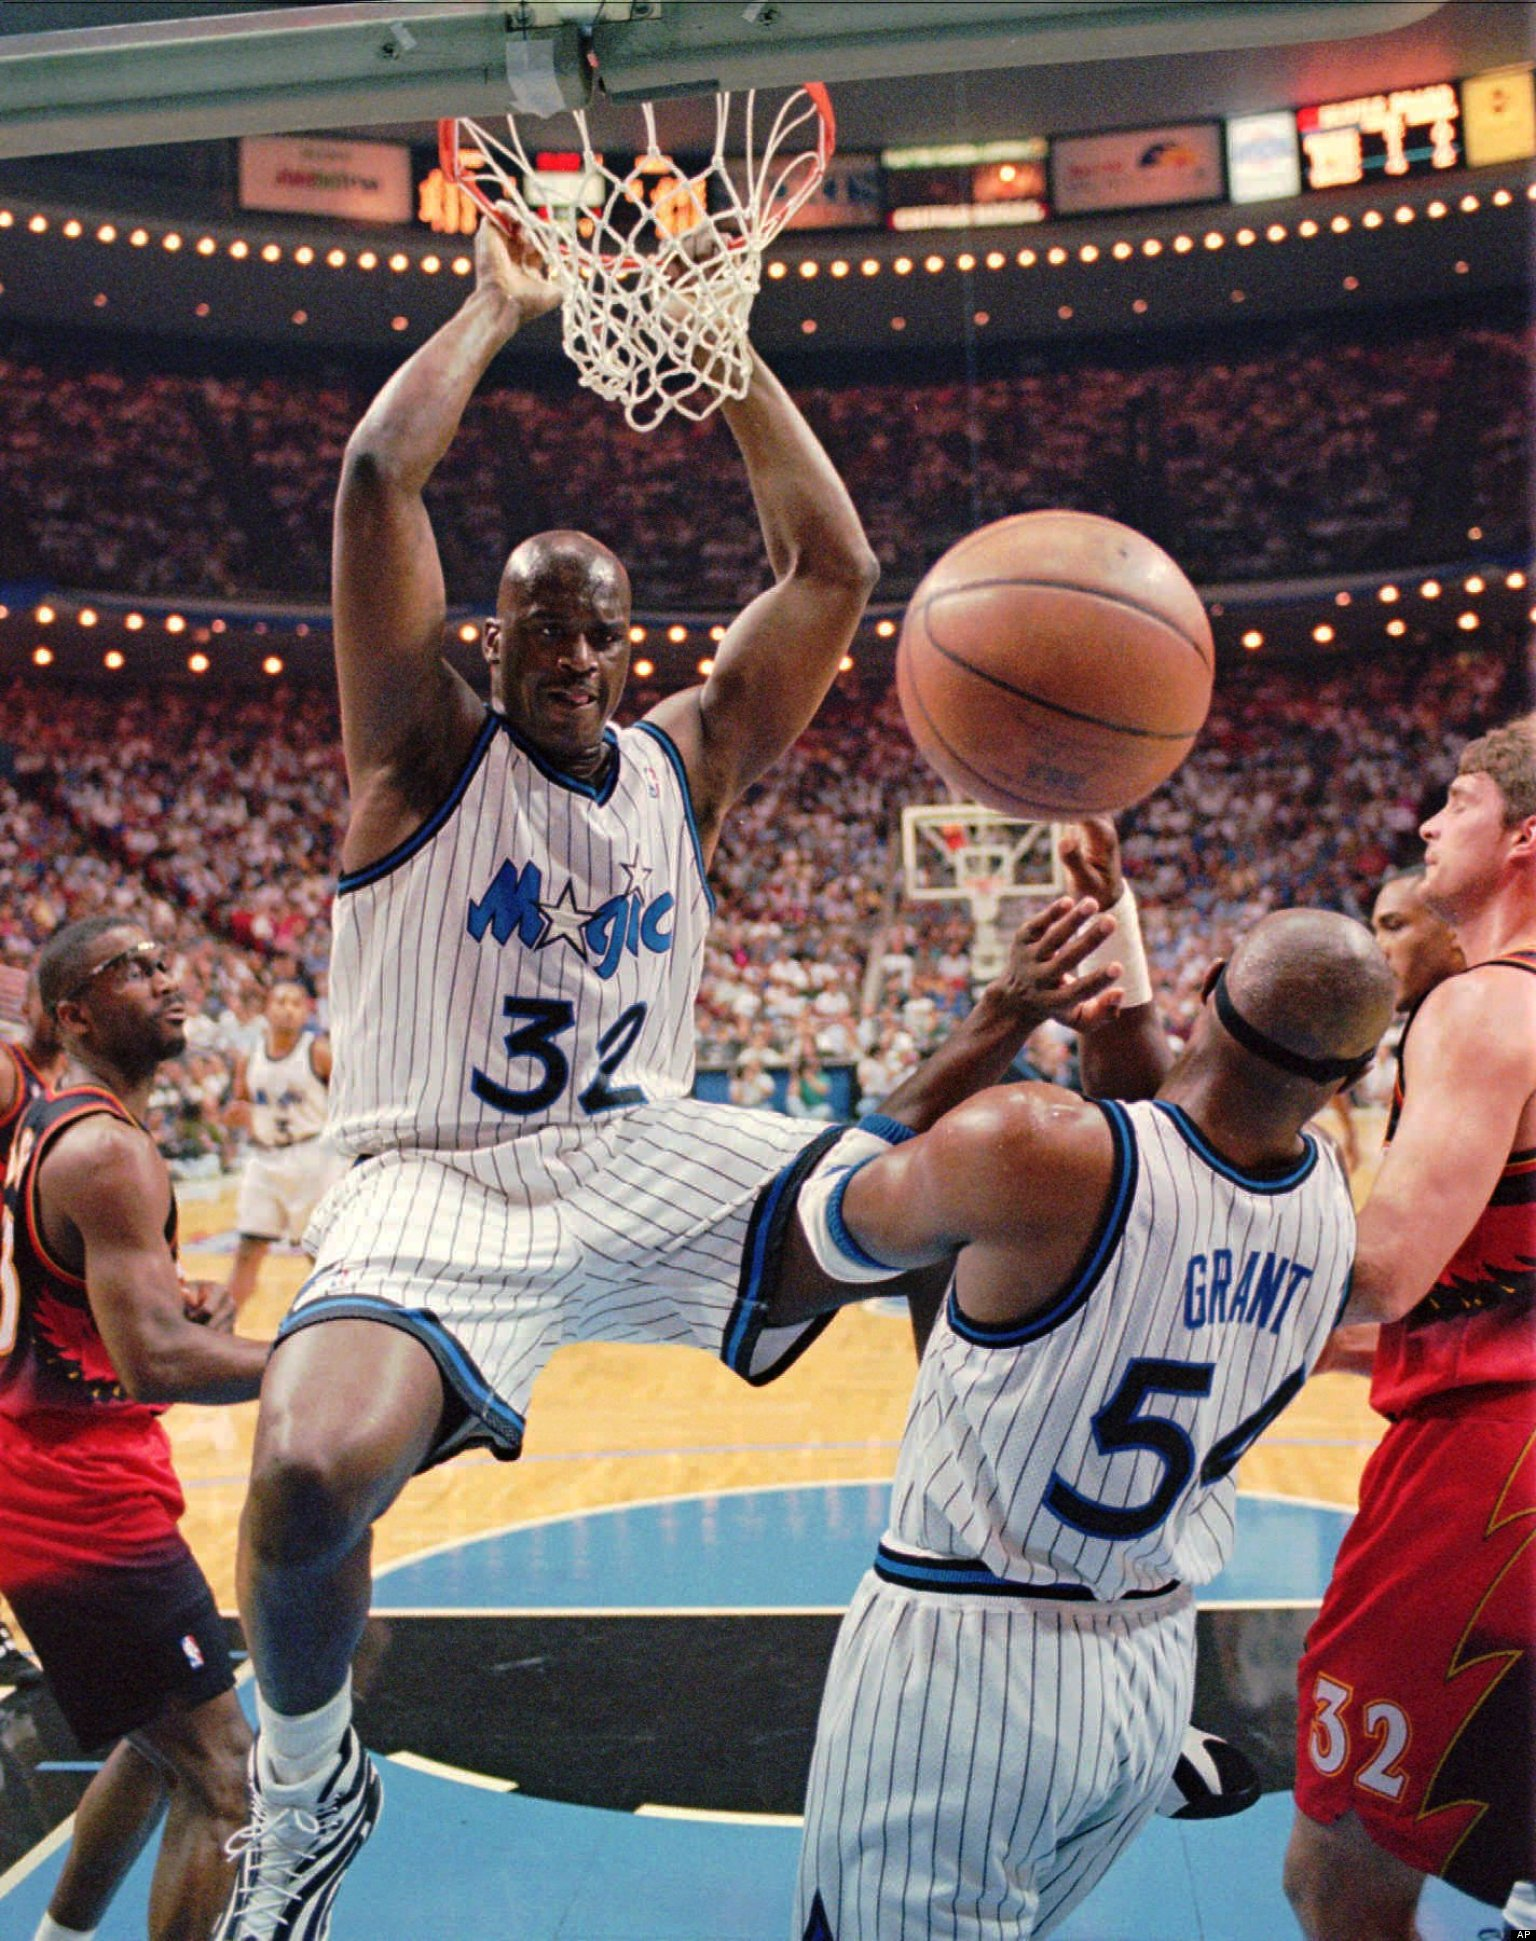 Horace Grant I Would Rather Play Against Shaq Than Fight Morgan